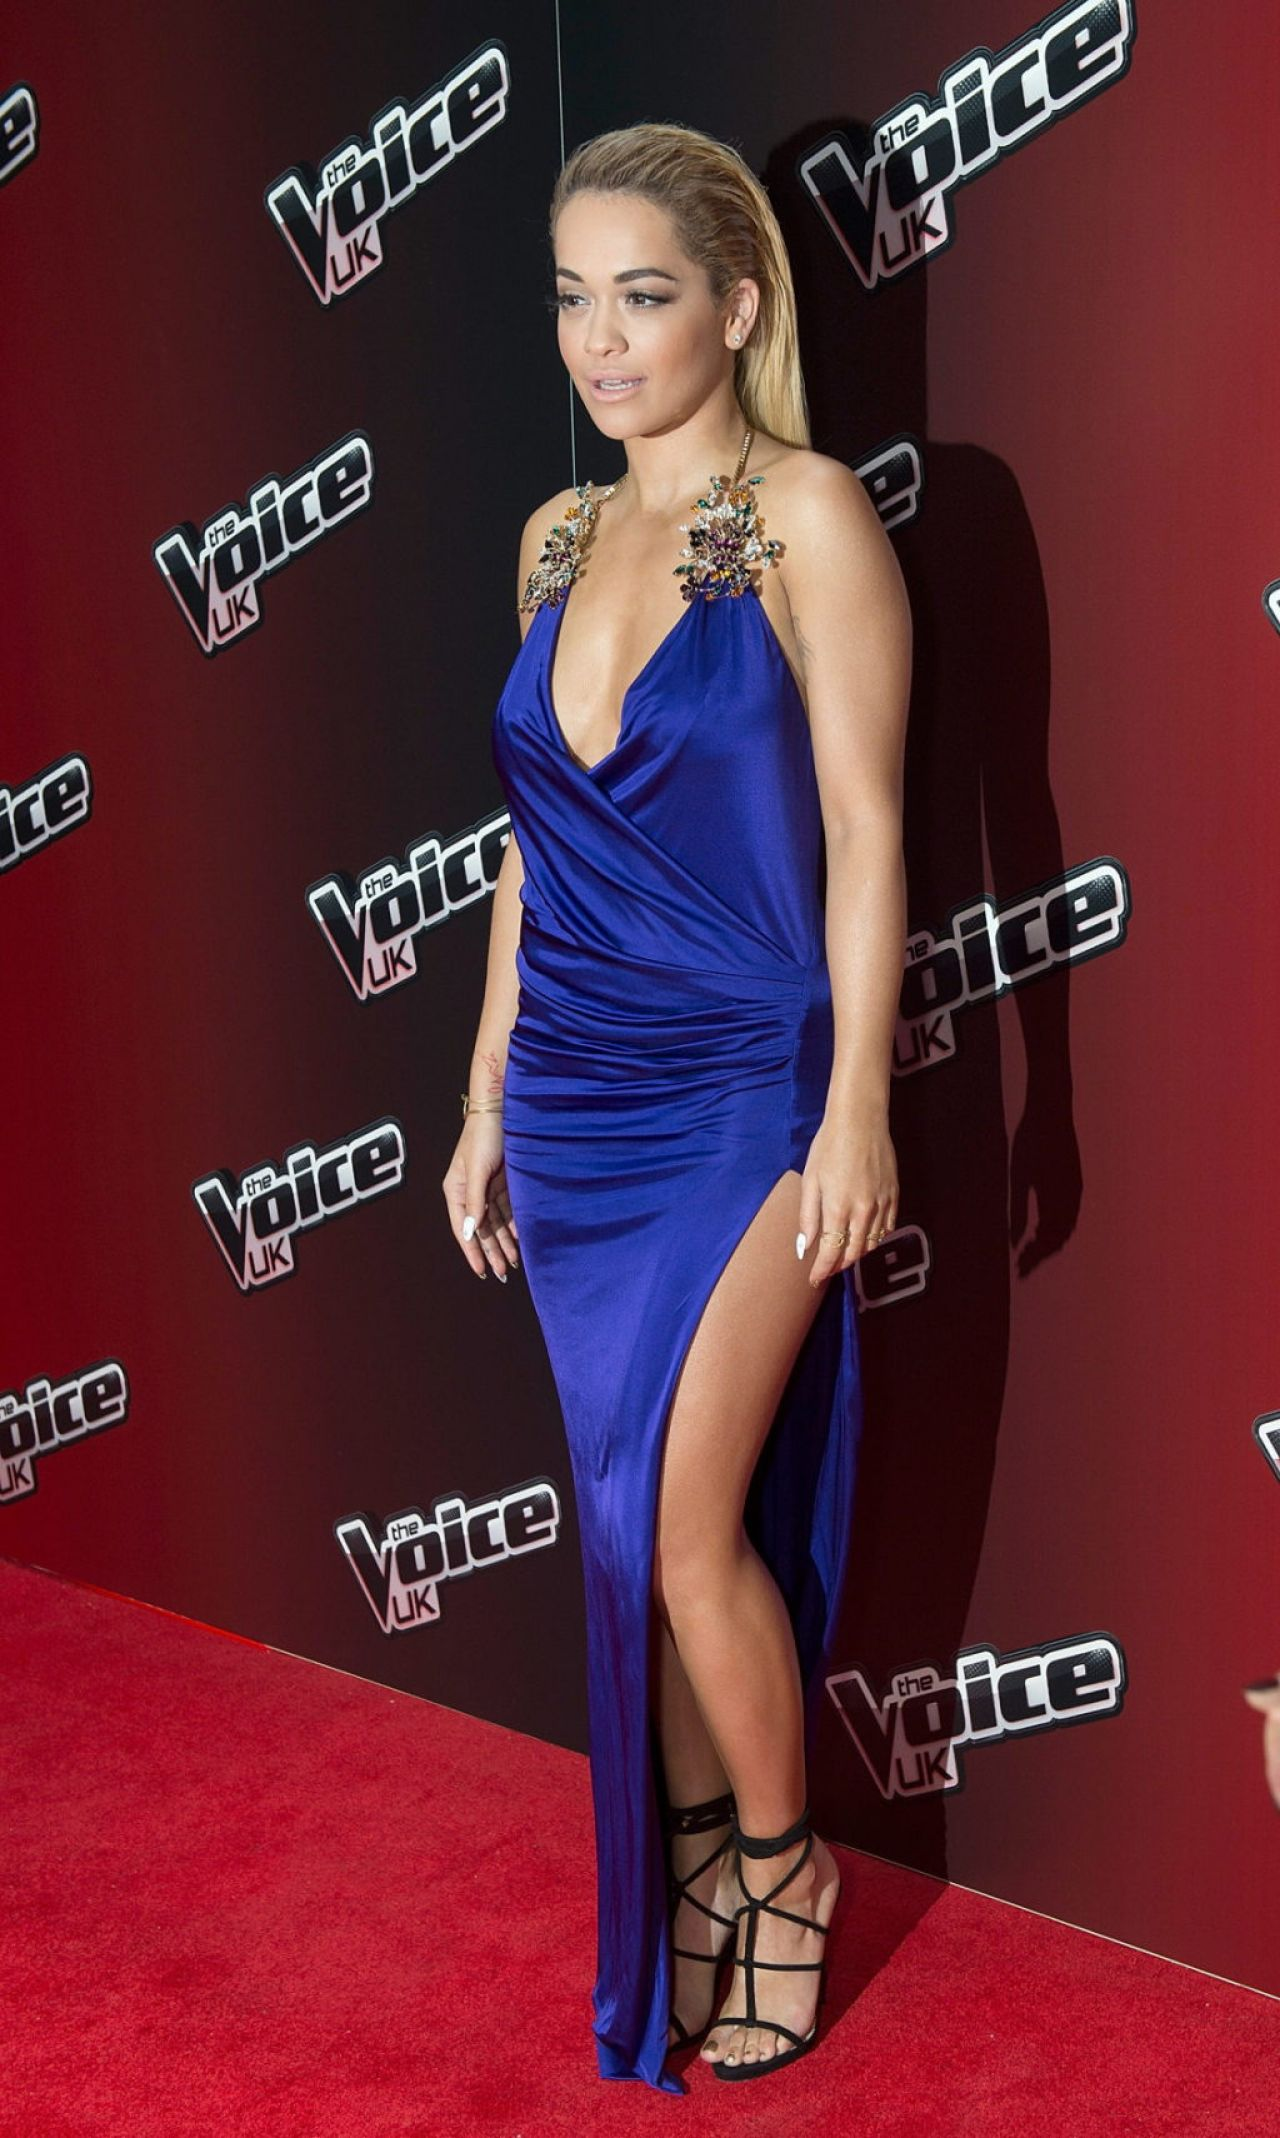 Rita Ora The Voice Uk Series 4 Launch Photocall In London